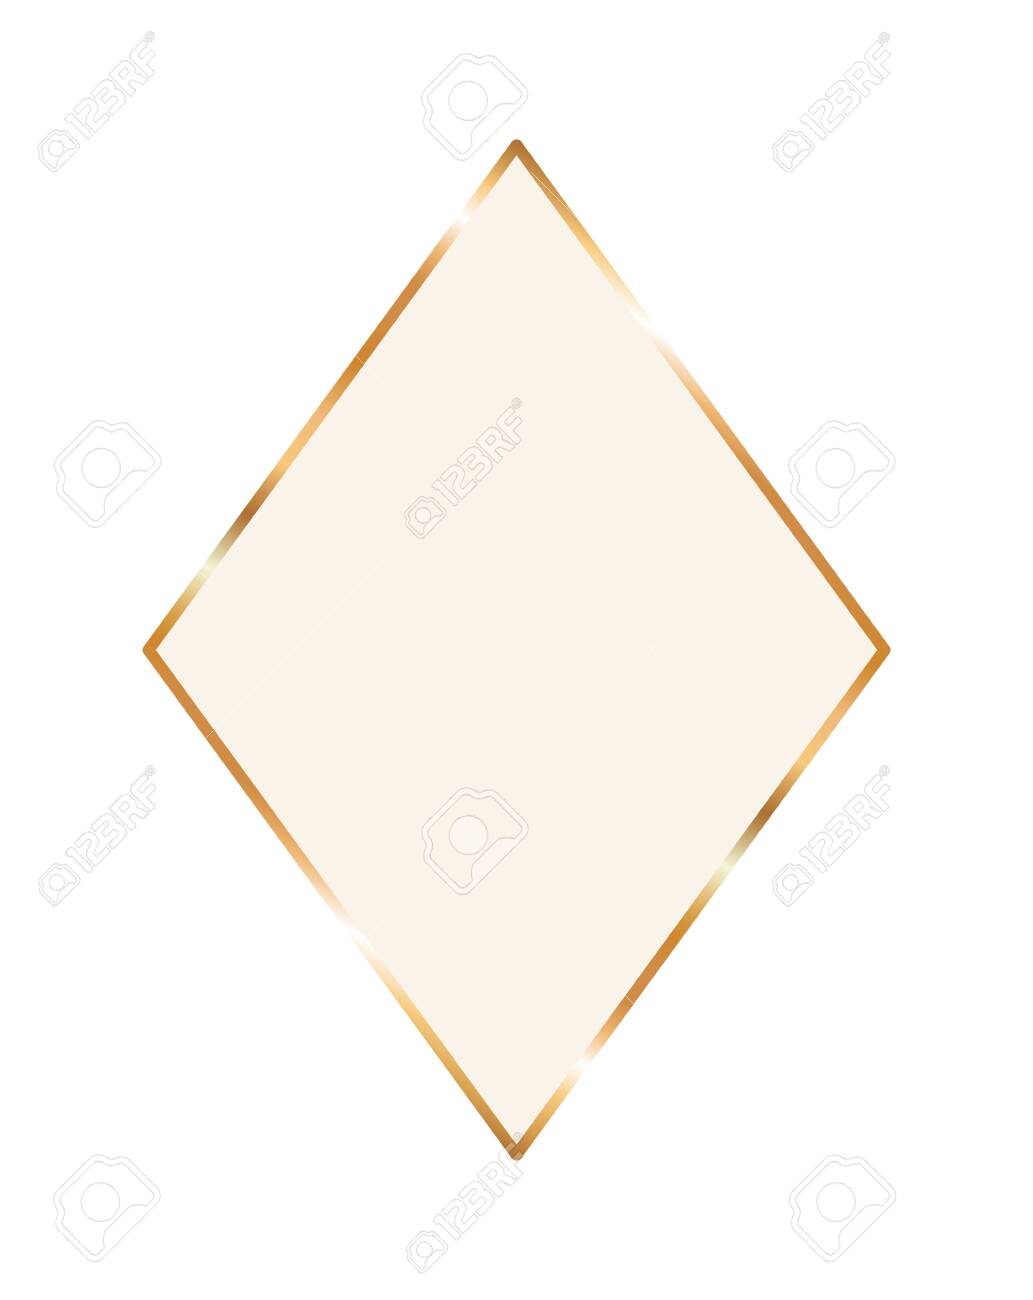 Diamond Shaped Picture Frame : diamond, shaped, picture, frame, Ornament, Frame, Diamond, Shaped, Design, Decorative, Element.., Royalty, Cliparts,, Vectors,, Stock, Illustration., Image, 154137702.